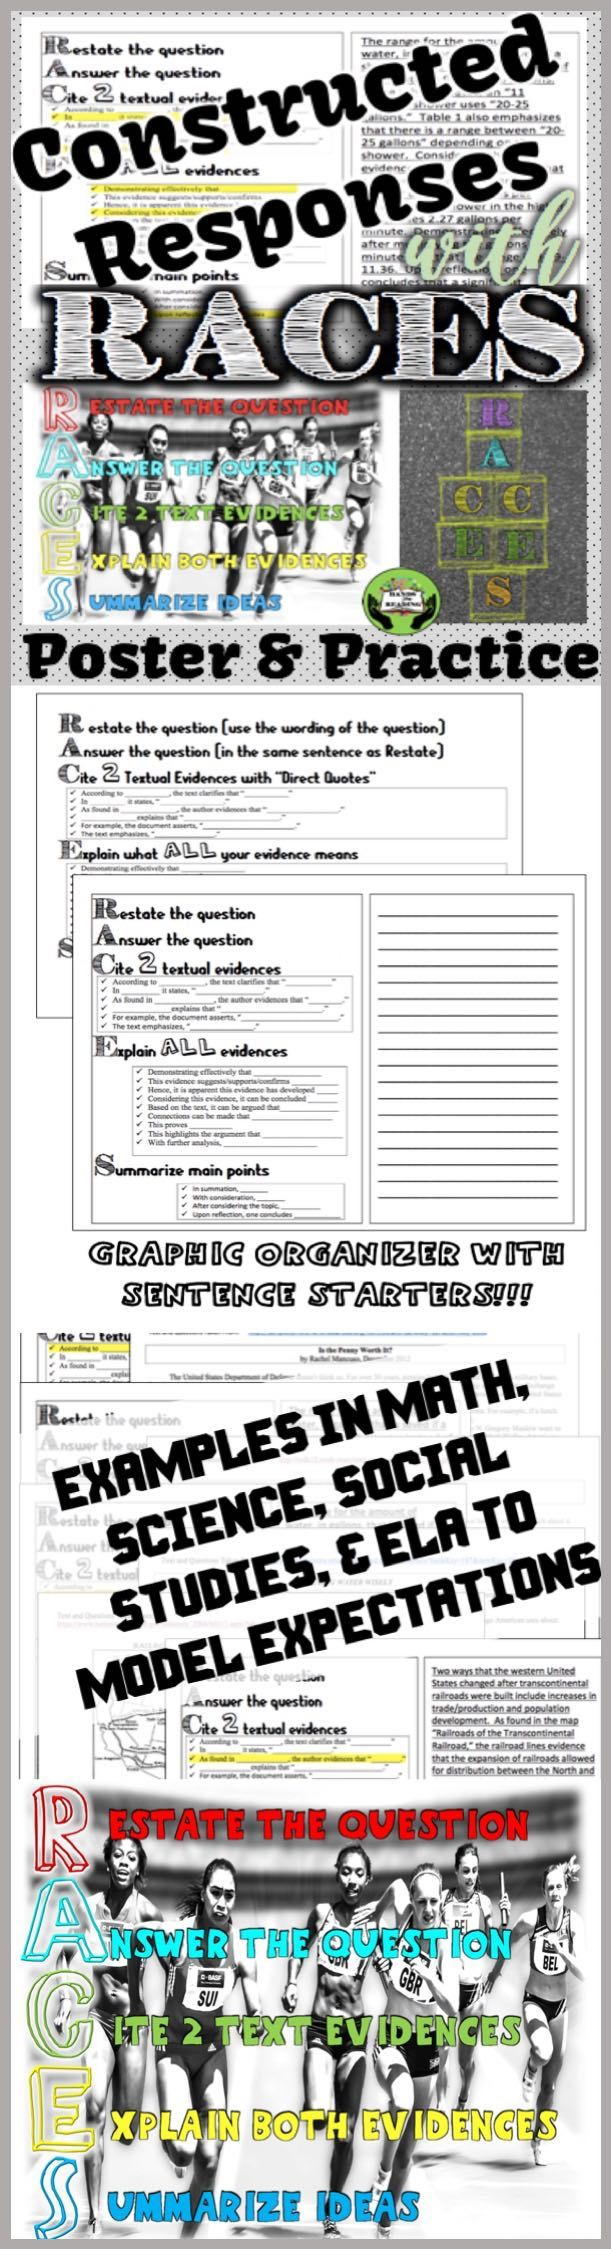 MAKING WRITING SHORT ANSWER RESPONSES EASY! Using the RACES method, students will develop constructed response skills. This resource is specifically designed for UPPER GRADE STUDENTS. Allow students to show their comprehension and increase student test scores and argumentative writing ability. This amazing process was recommended to me by several elementary school teachers and I could not believe I hadn't seen it being used in every middle and high school classroom. $2.00